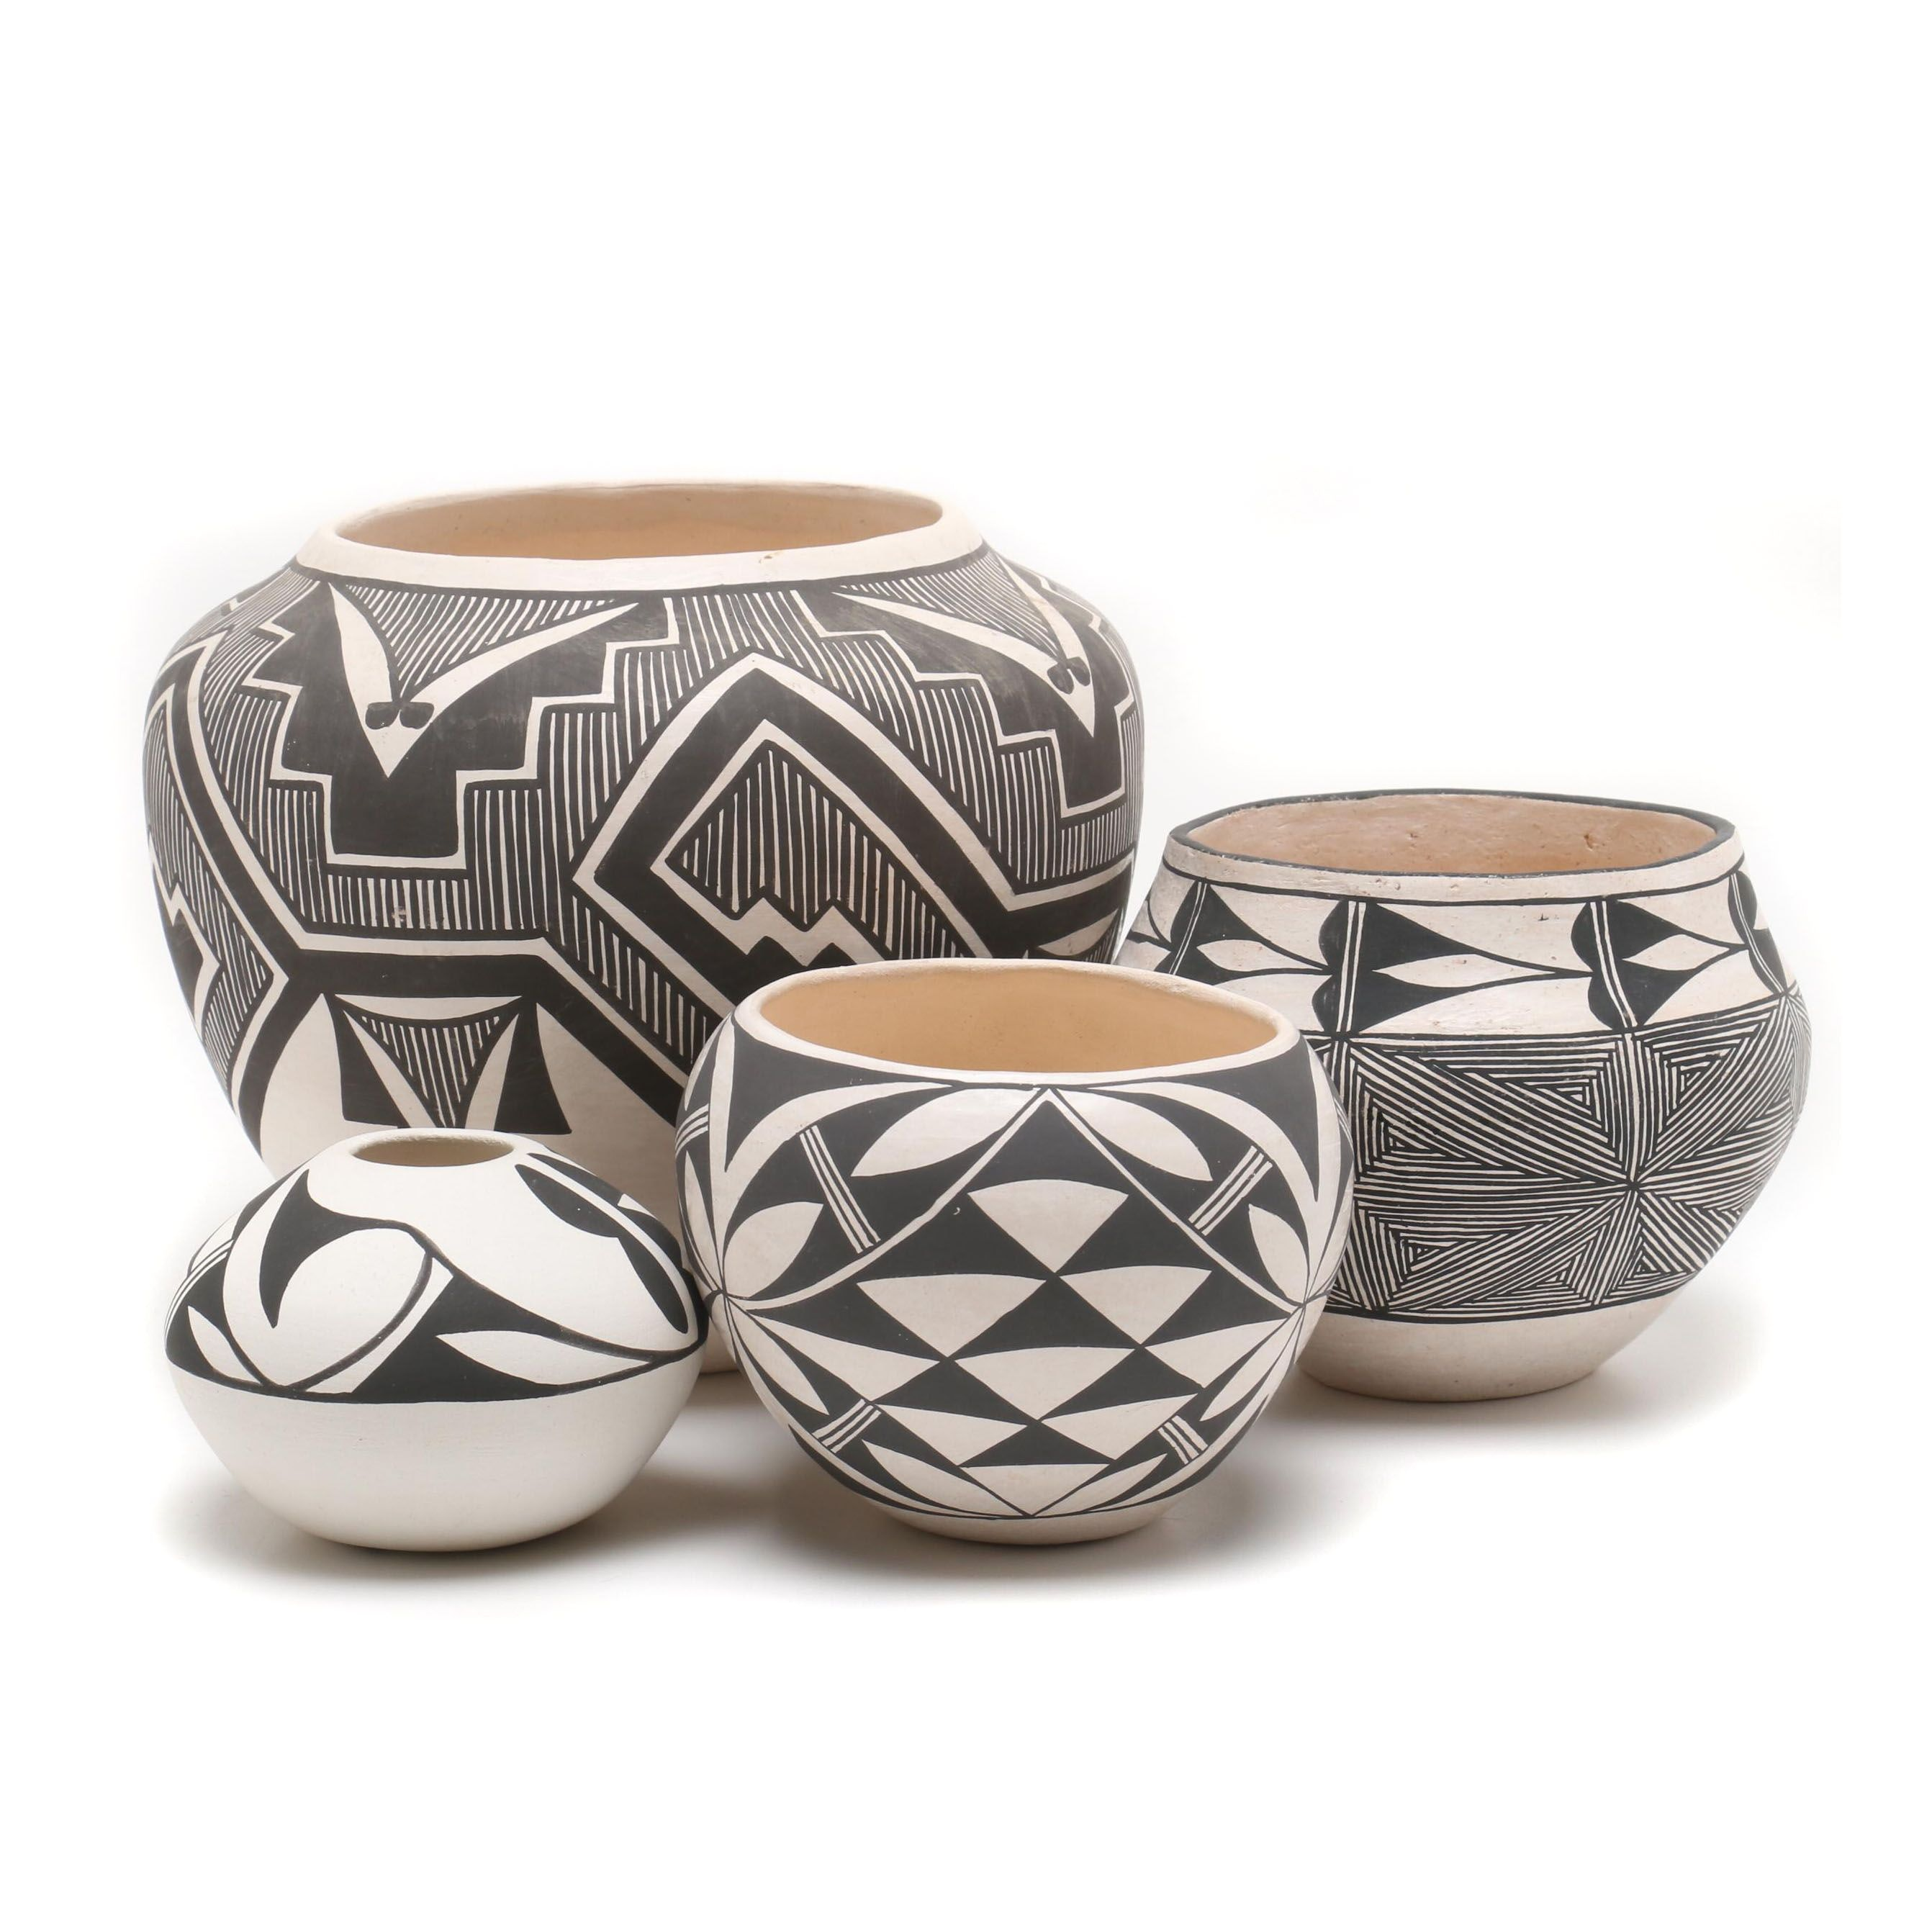 Shroulate, Vallo and Abelia Acoma Black on White Earthenware Vessels